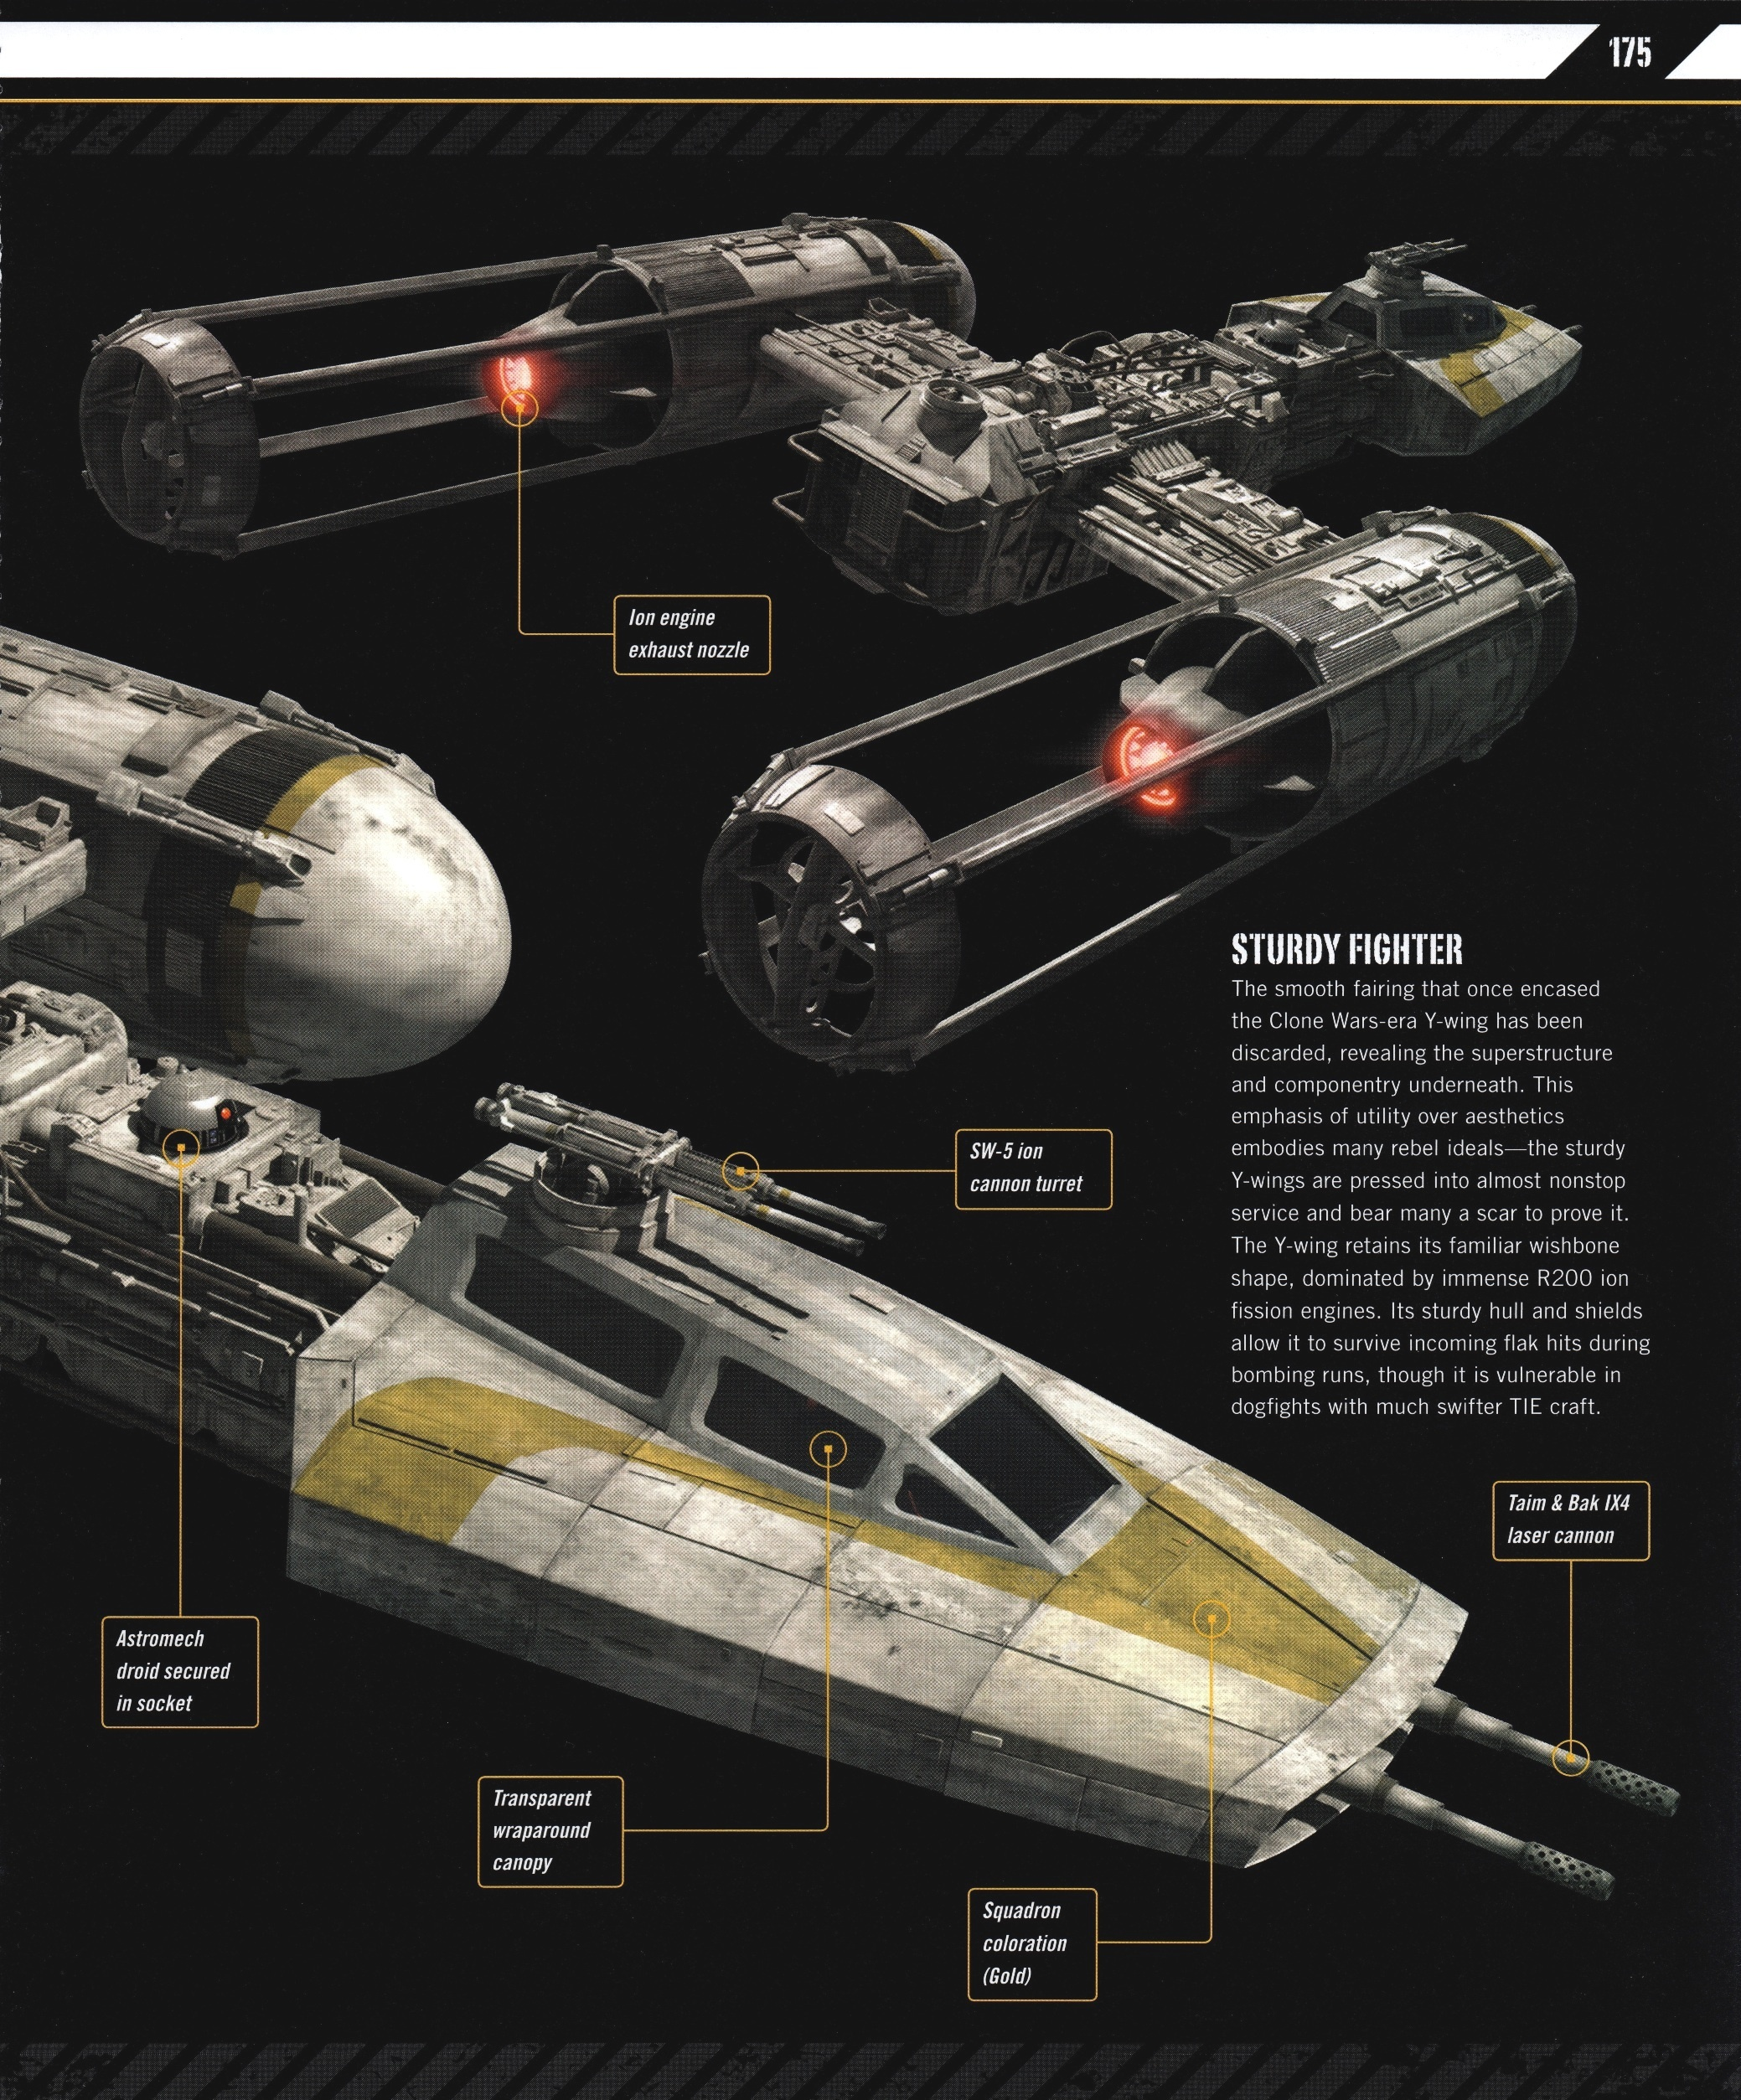 Rogue One Ultimate Visual Guide (b0bafett_Empire) p175